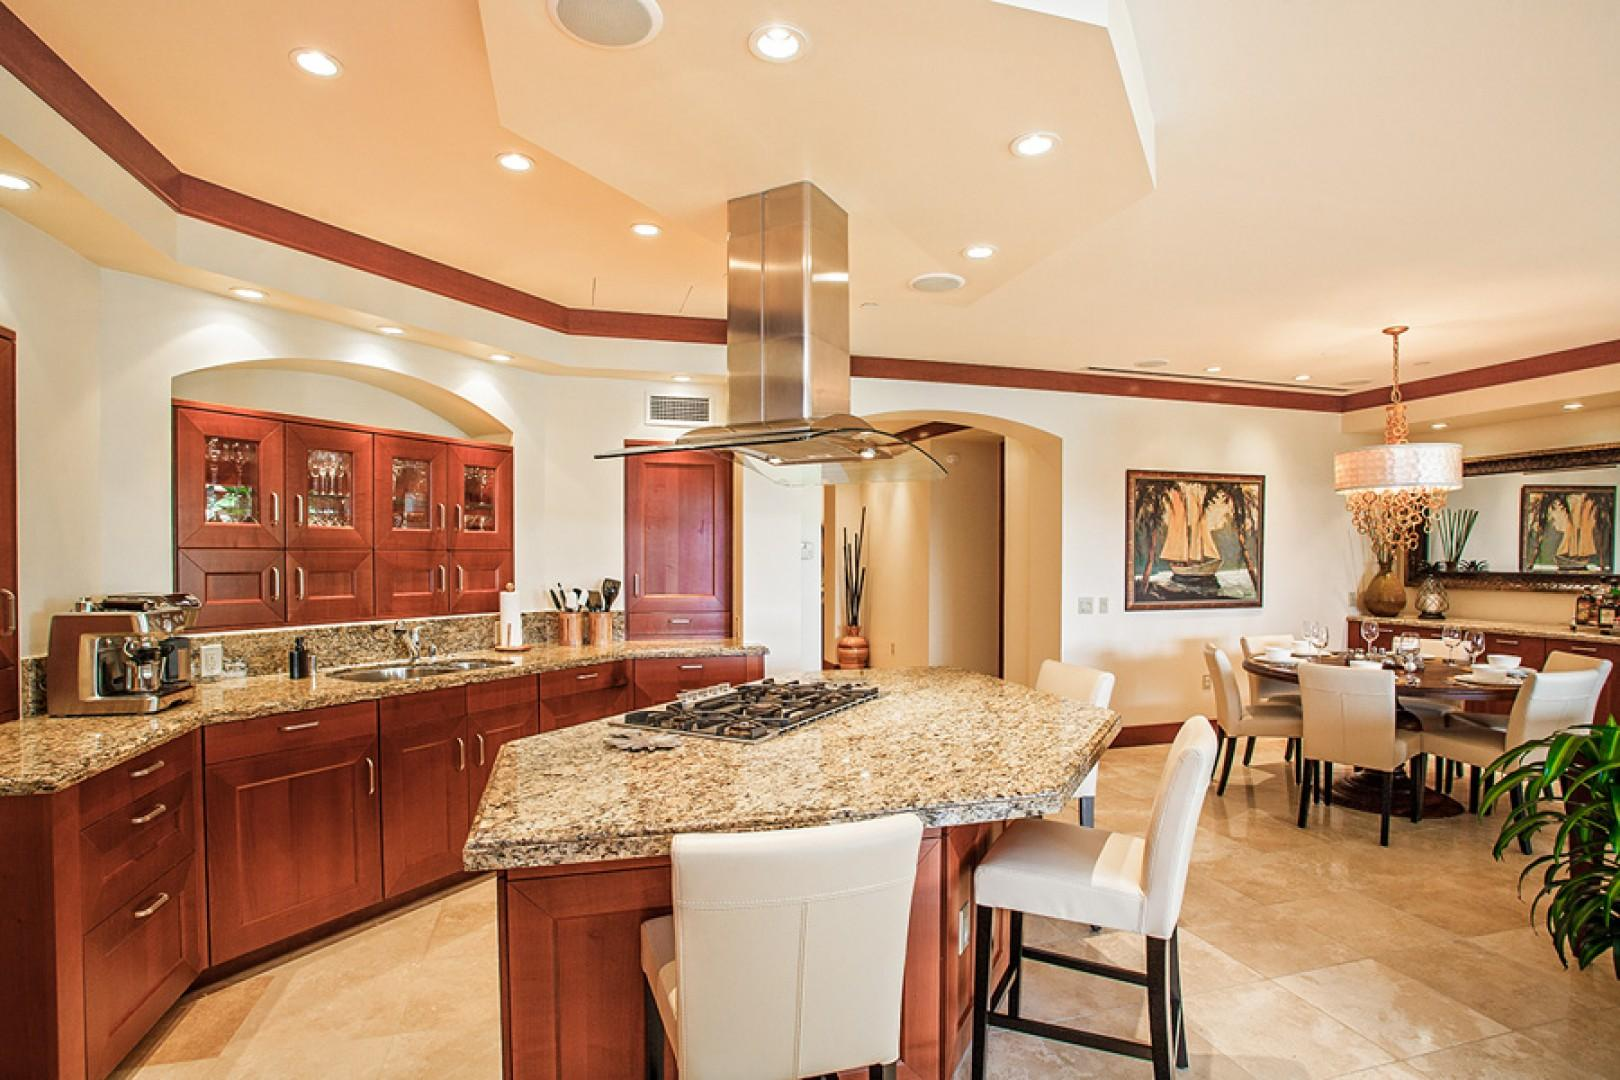 Gourmet kitchen with bar seating and formal dining space beyond.